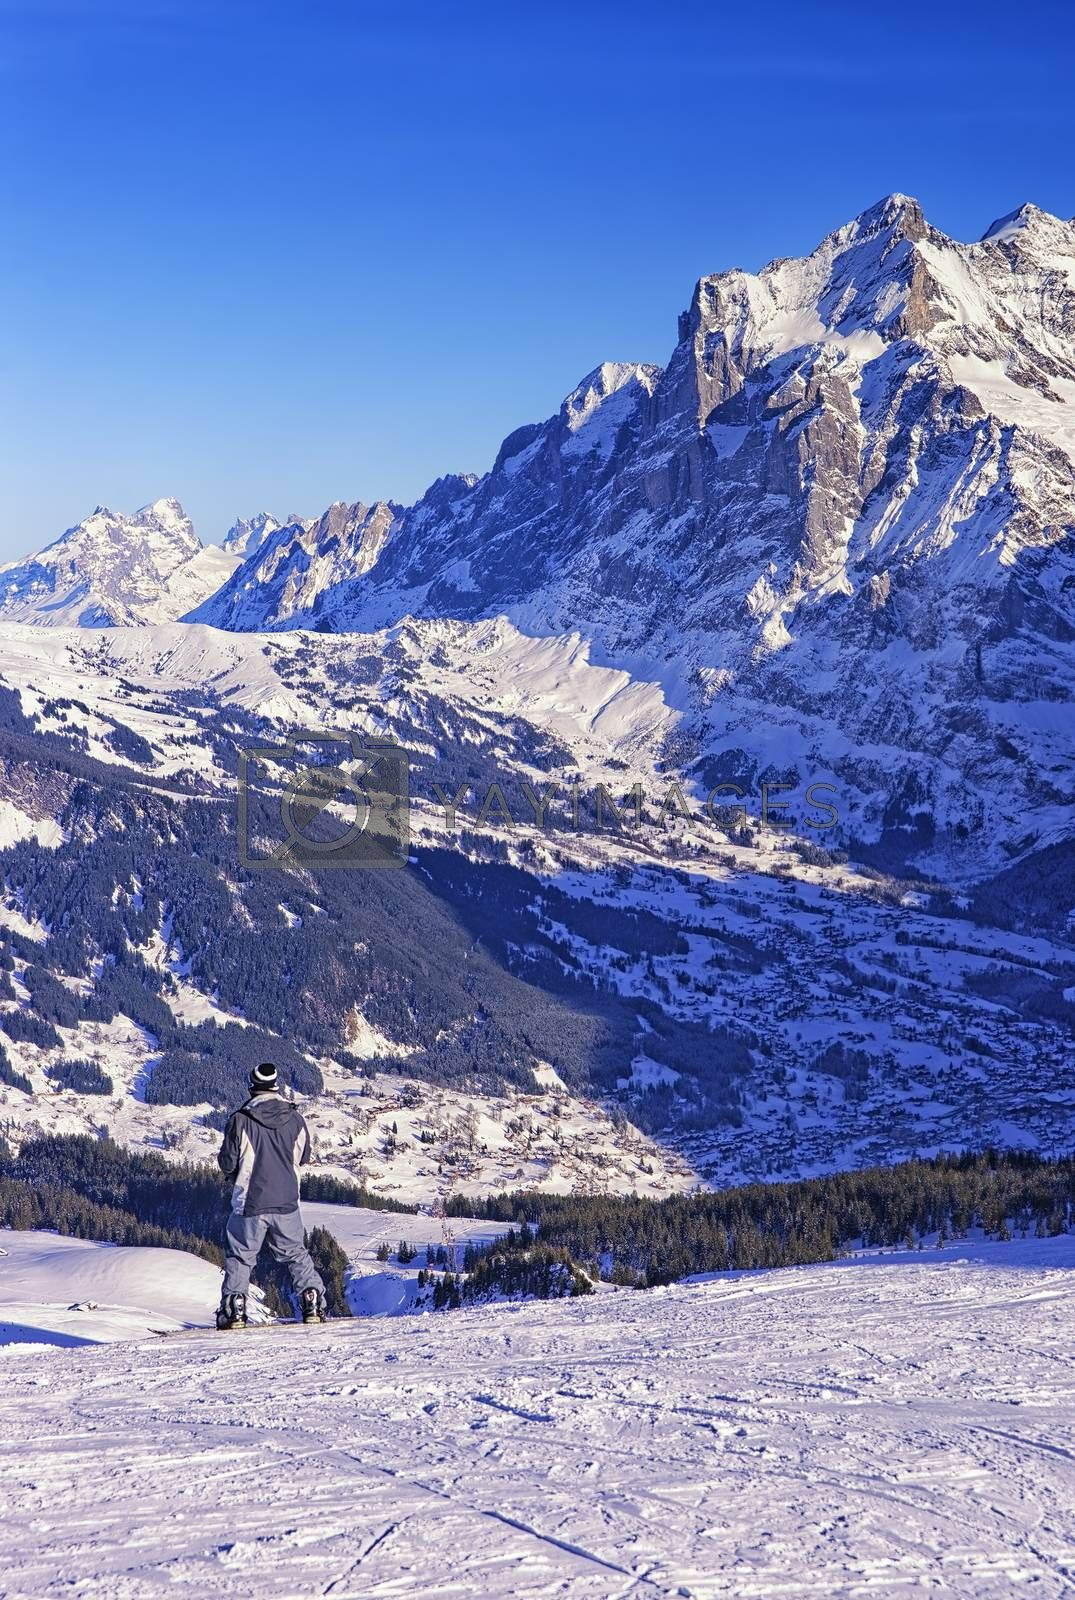 Royalty free image of Boy on snowboard at winter sport resort in swiss alps by erix200511@mail.ru